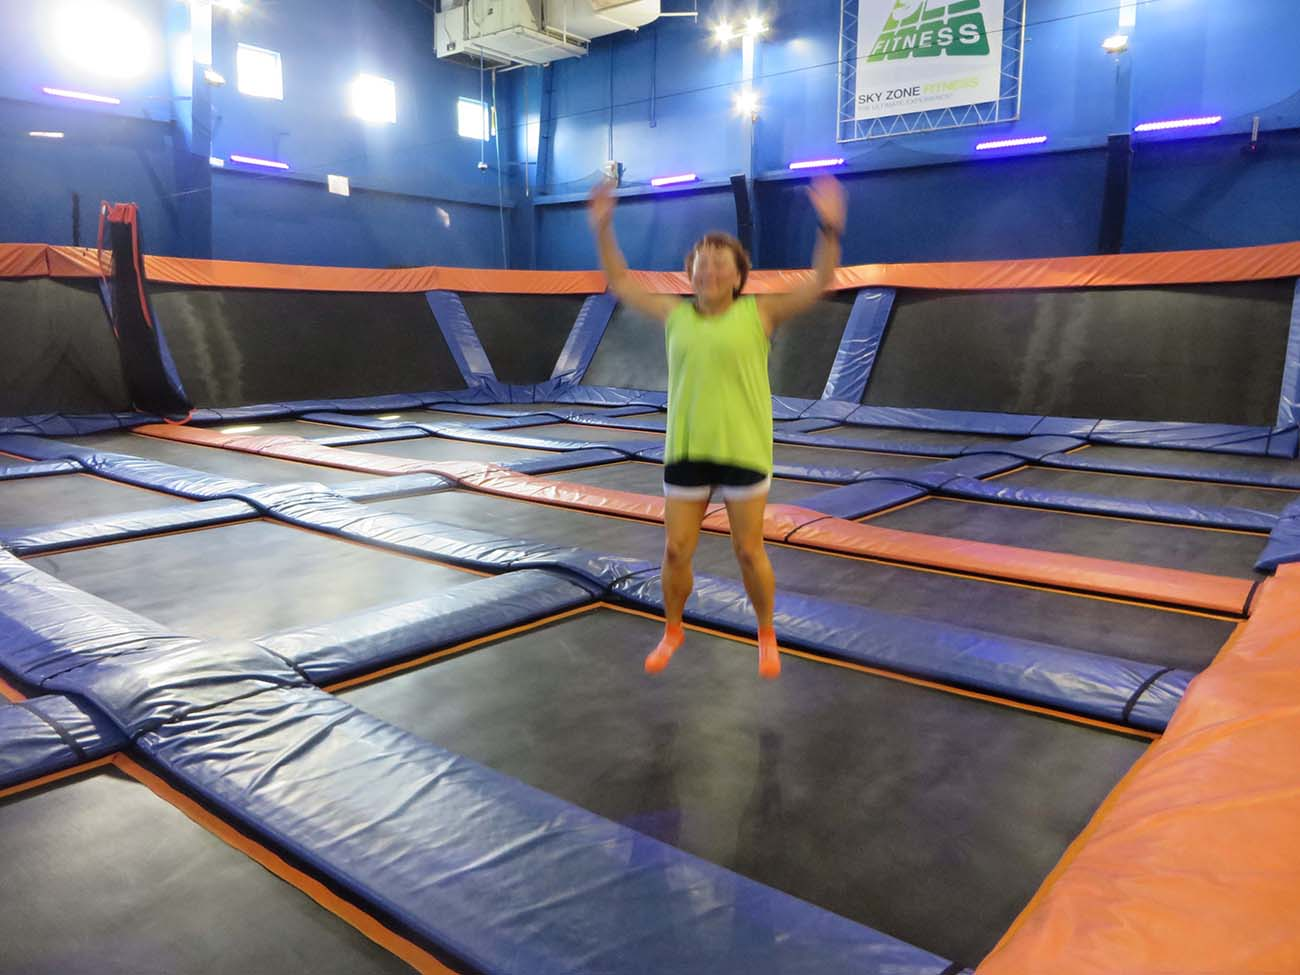 309 Gfg Can Trampoline Workouts Increase Your Fitness Get Fit Guy 39 S Quick And Dirty Tips To Slim Down Shape Up On Acast